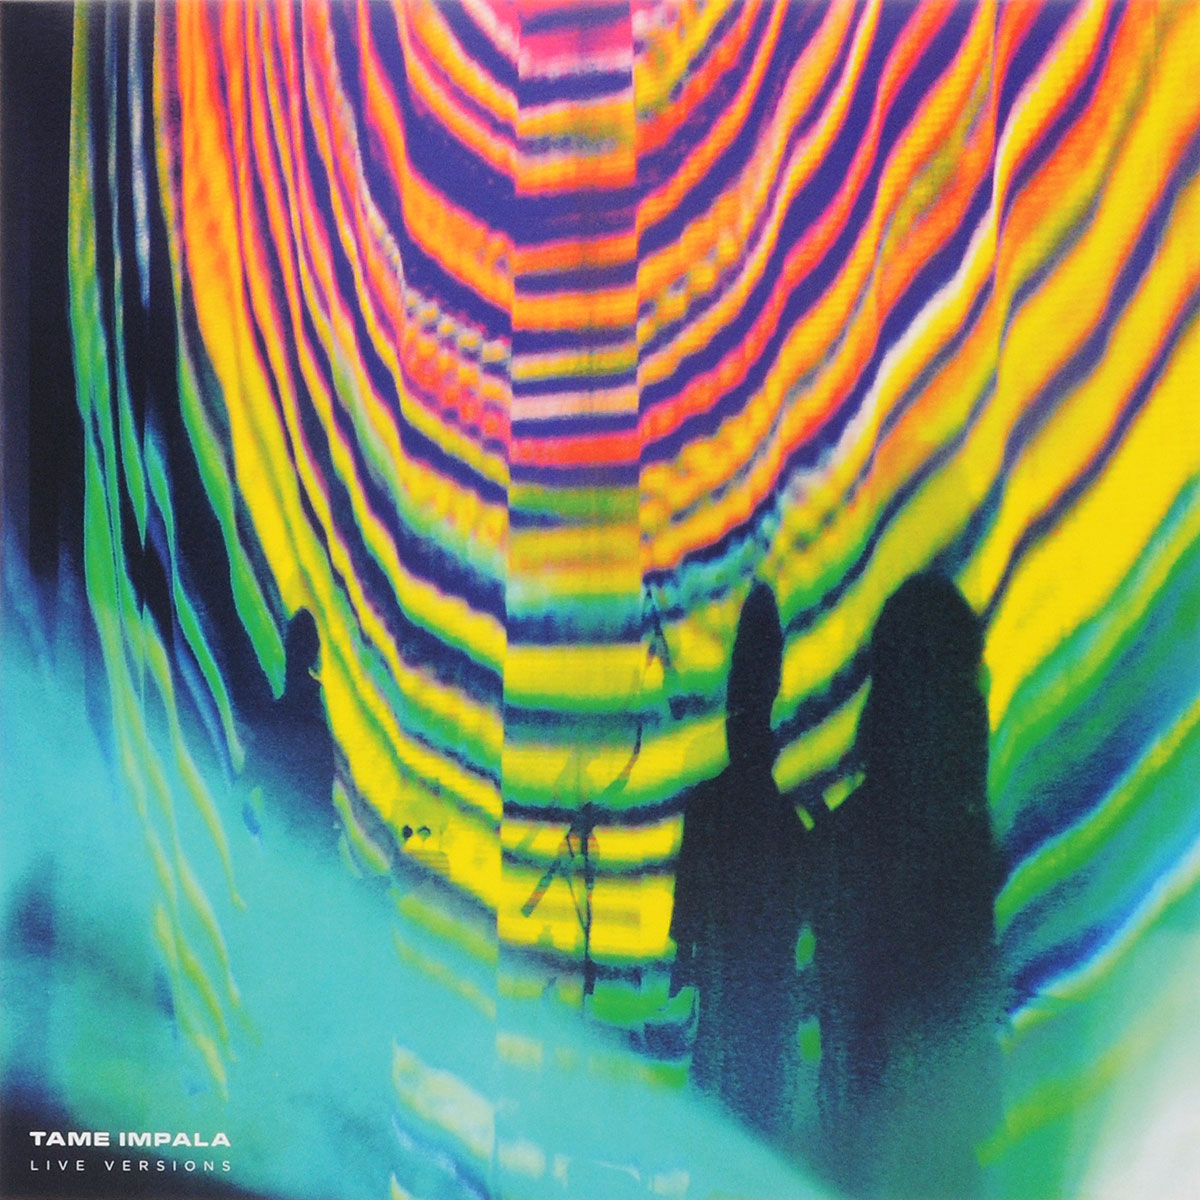 Tame Impala Tame Impala. Live Versions (LP) григорий лепс парус live